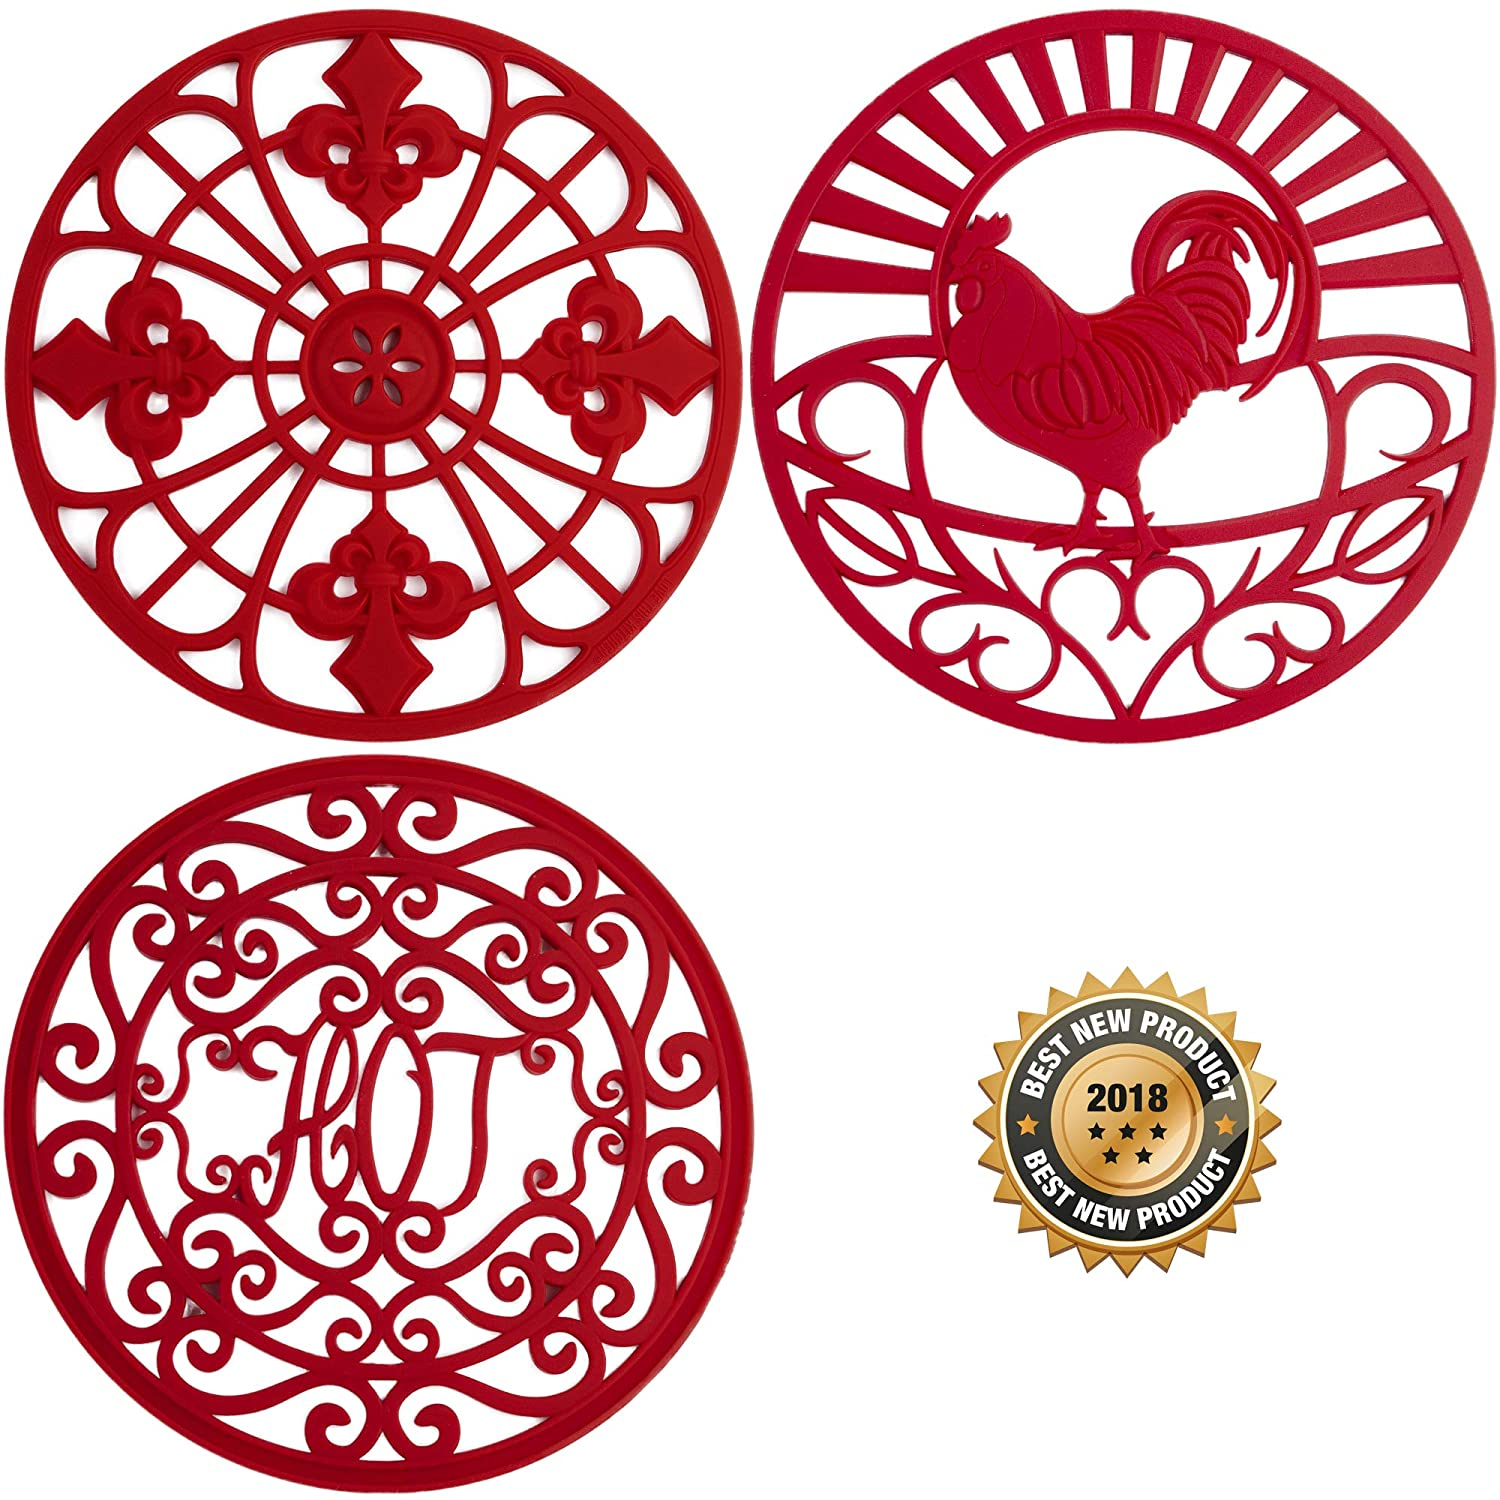 "Silicone Trivets Set For Hot Dishes | Modern Kitchen Hot Pads For Pots & Pans | Mixed Design (Country Decor) Mimics A Cast Iron Trivet (7.5"" Round, Set of 3, Coral Red)"